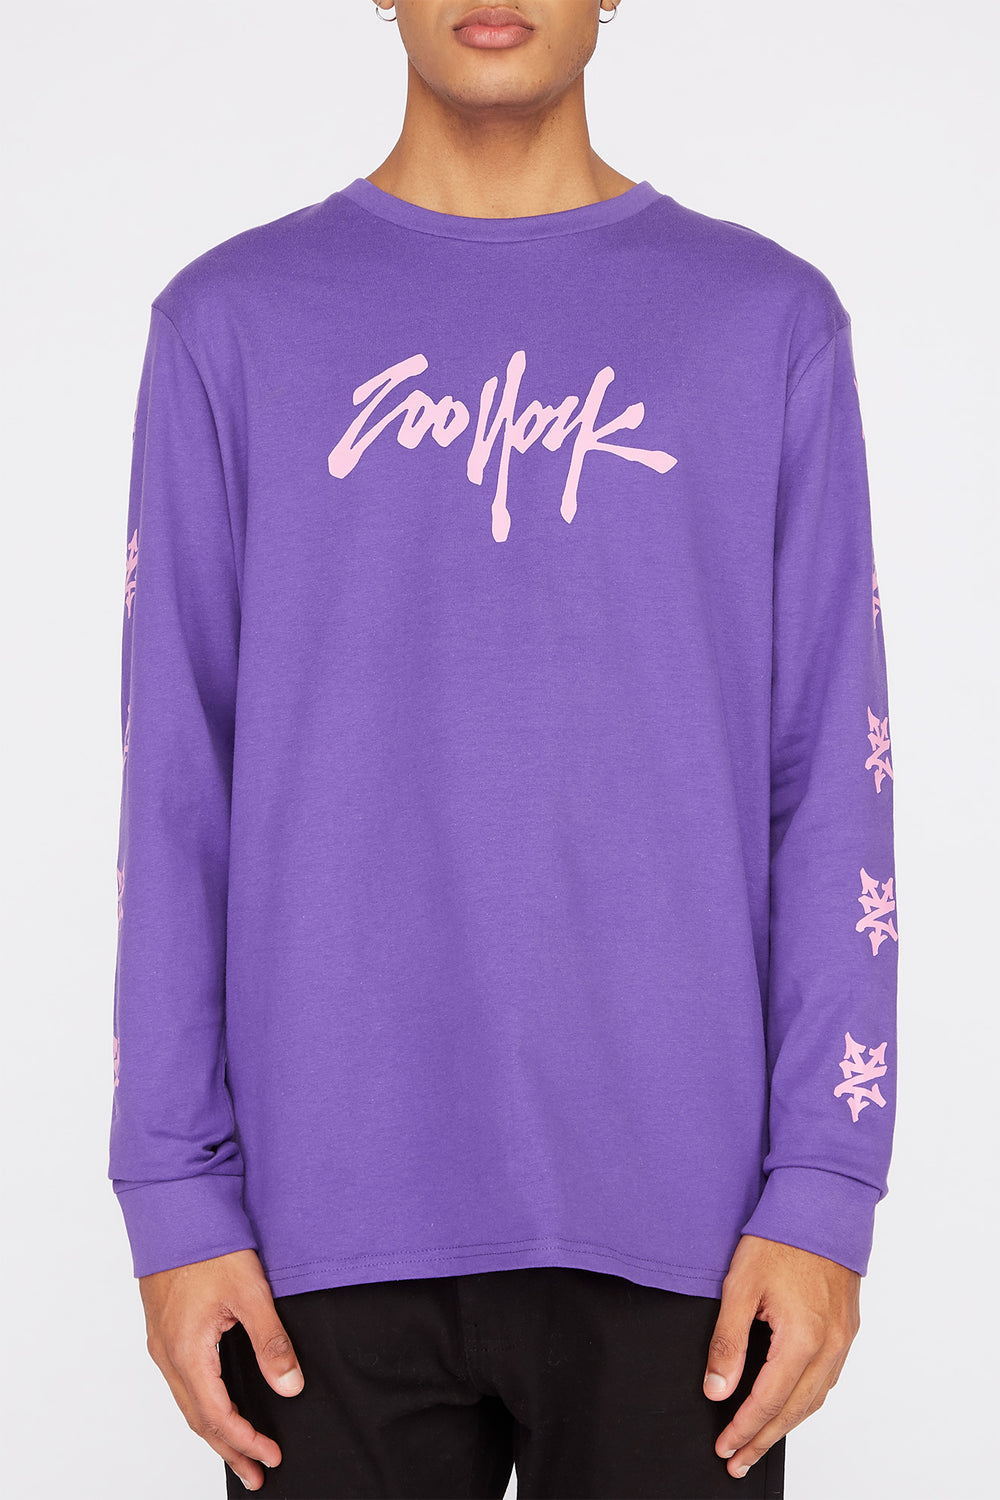 Zoo York Mens NYC Boroughs Long Sleeve Shirt Purple